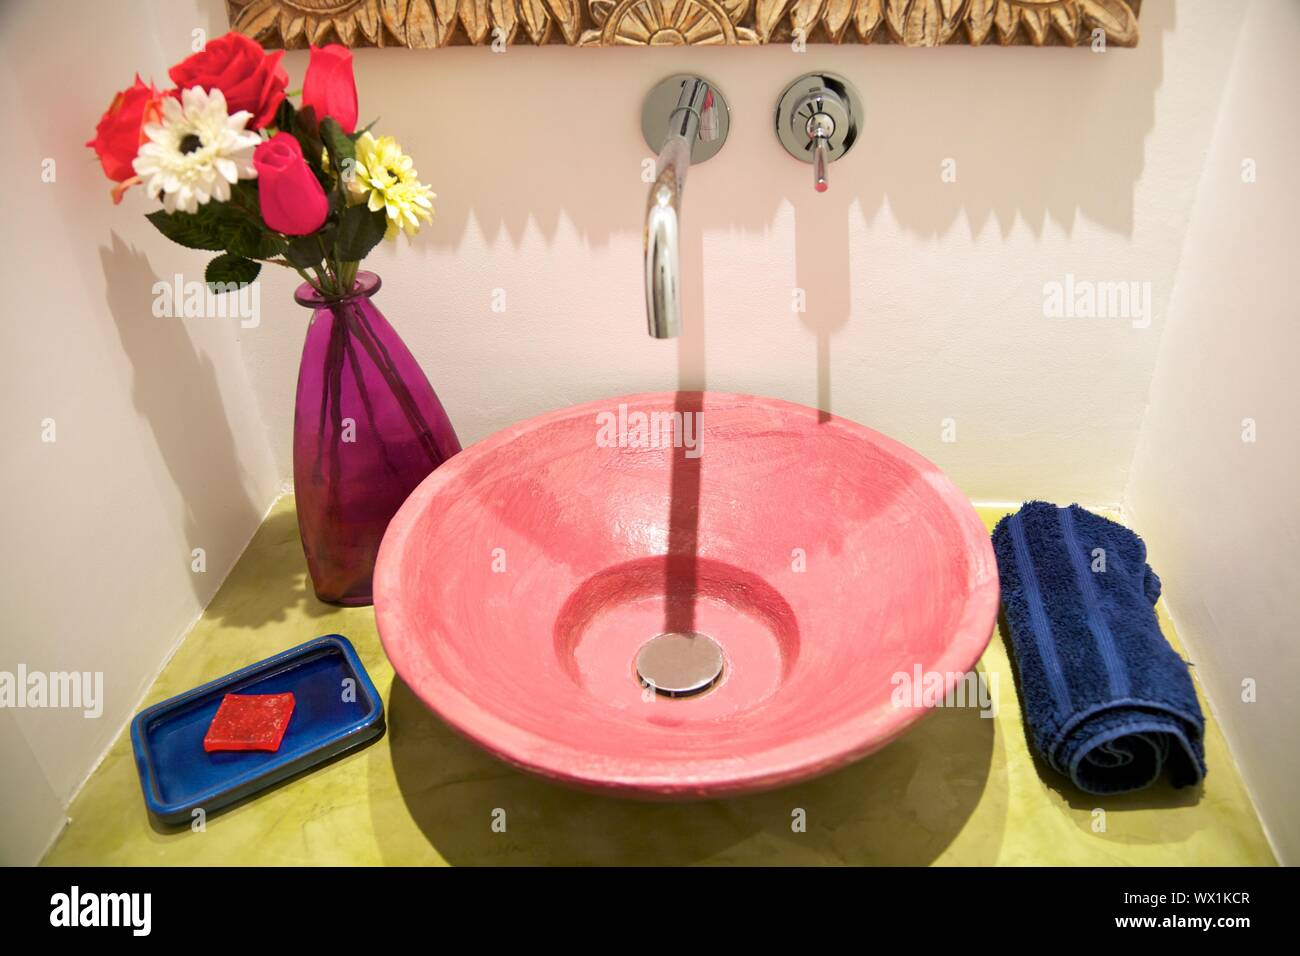 washbasin on green table and decoration in bathroom Stock Photo